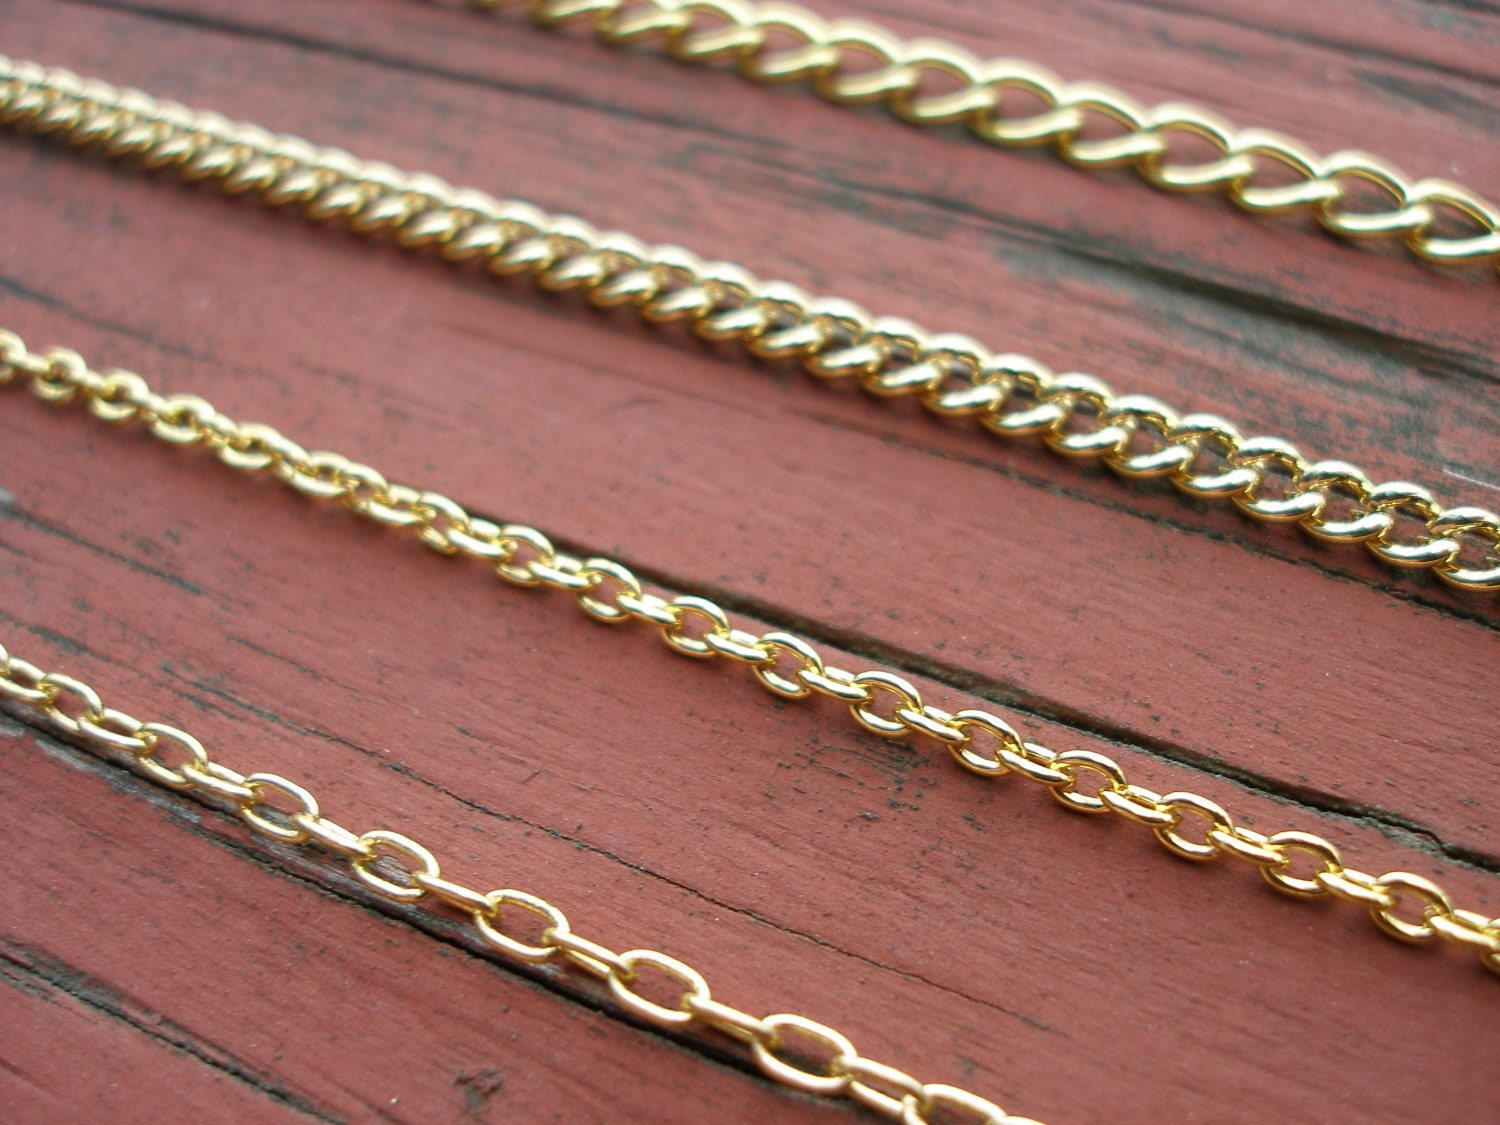 36 Gold Chain Necklace Finished With A Lobster Clasp